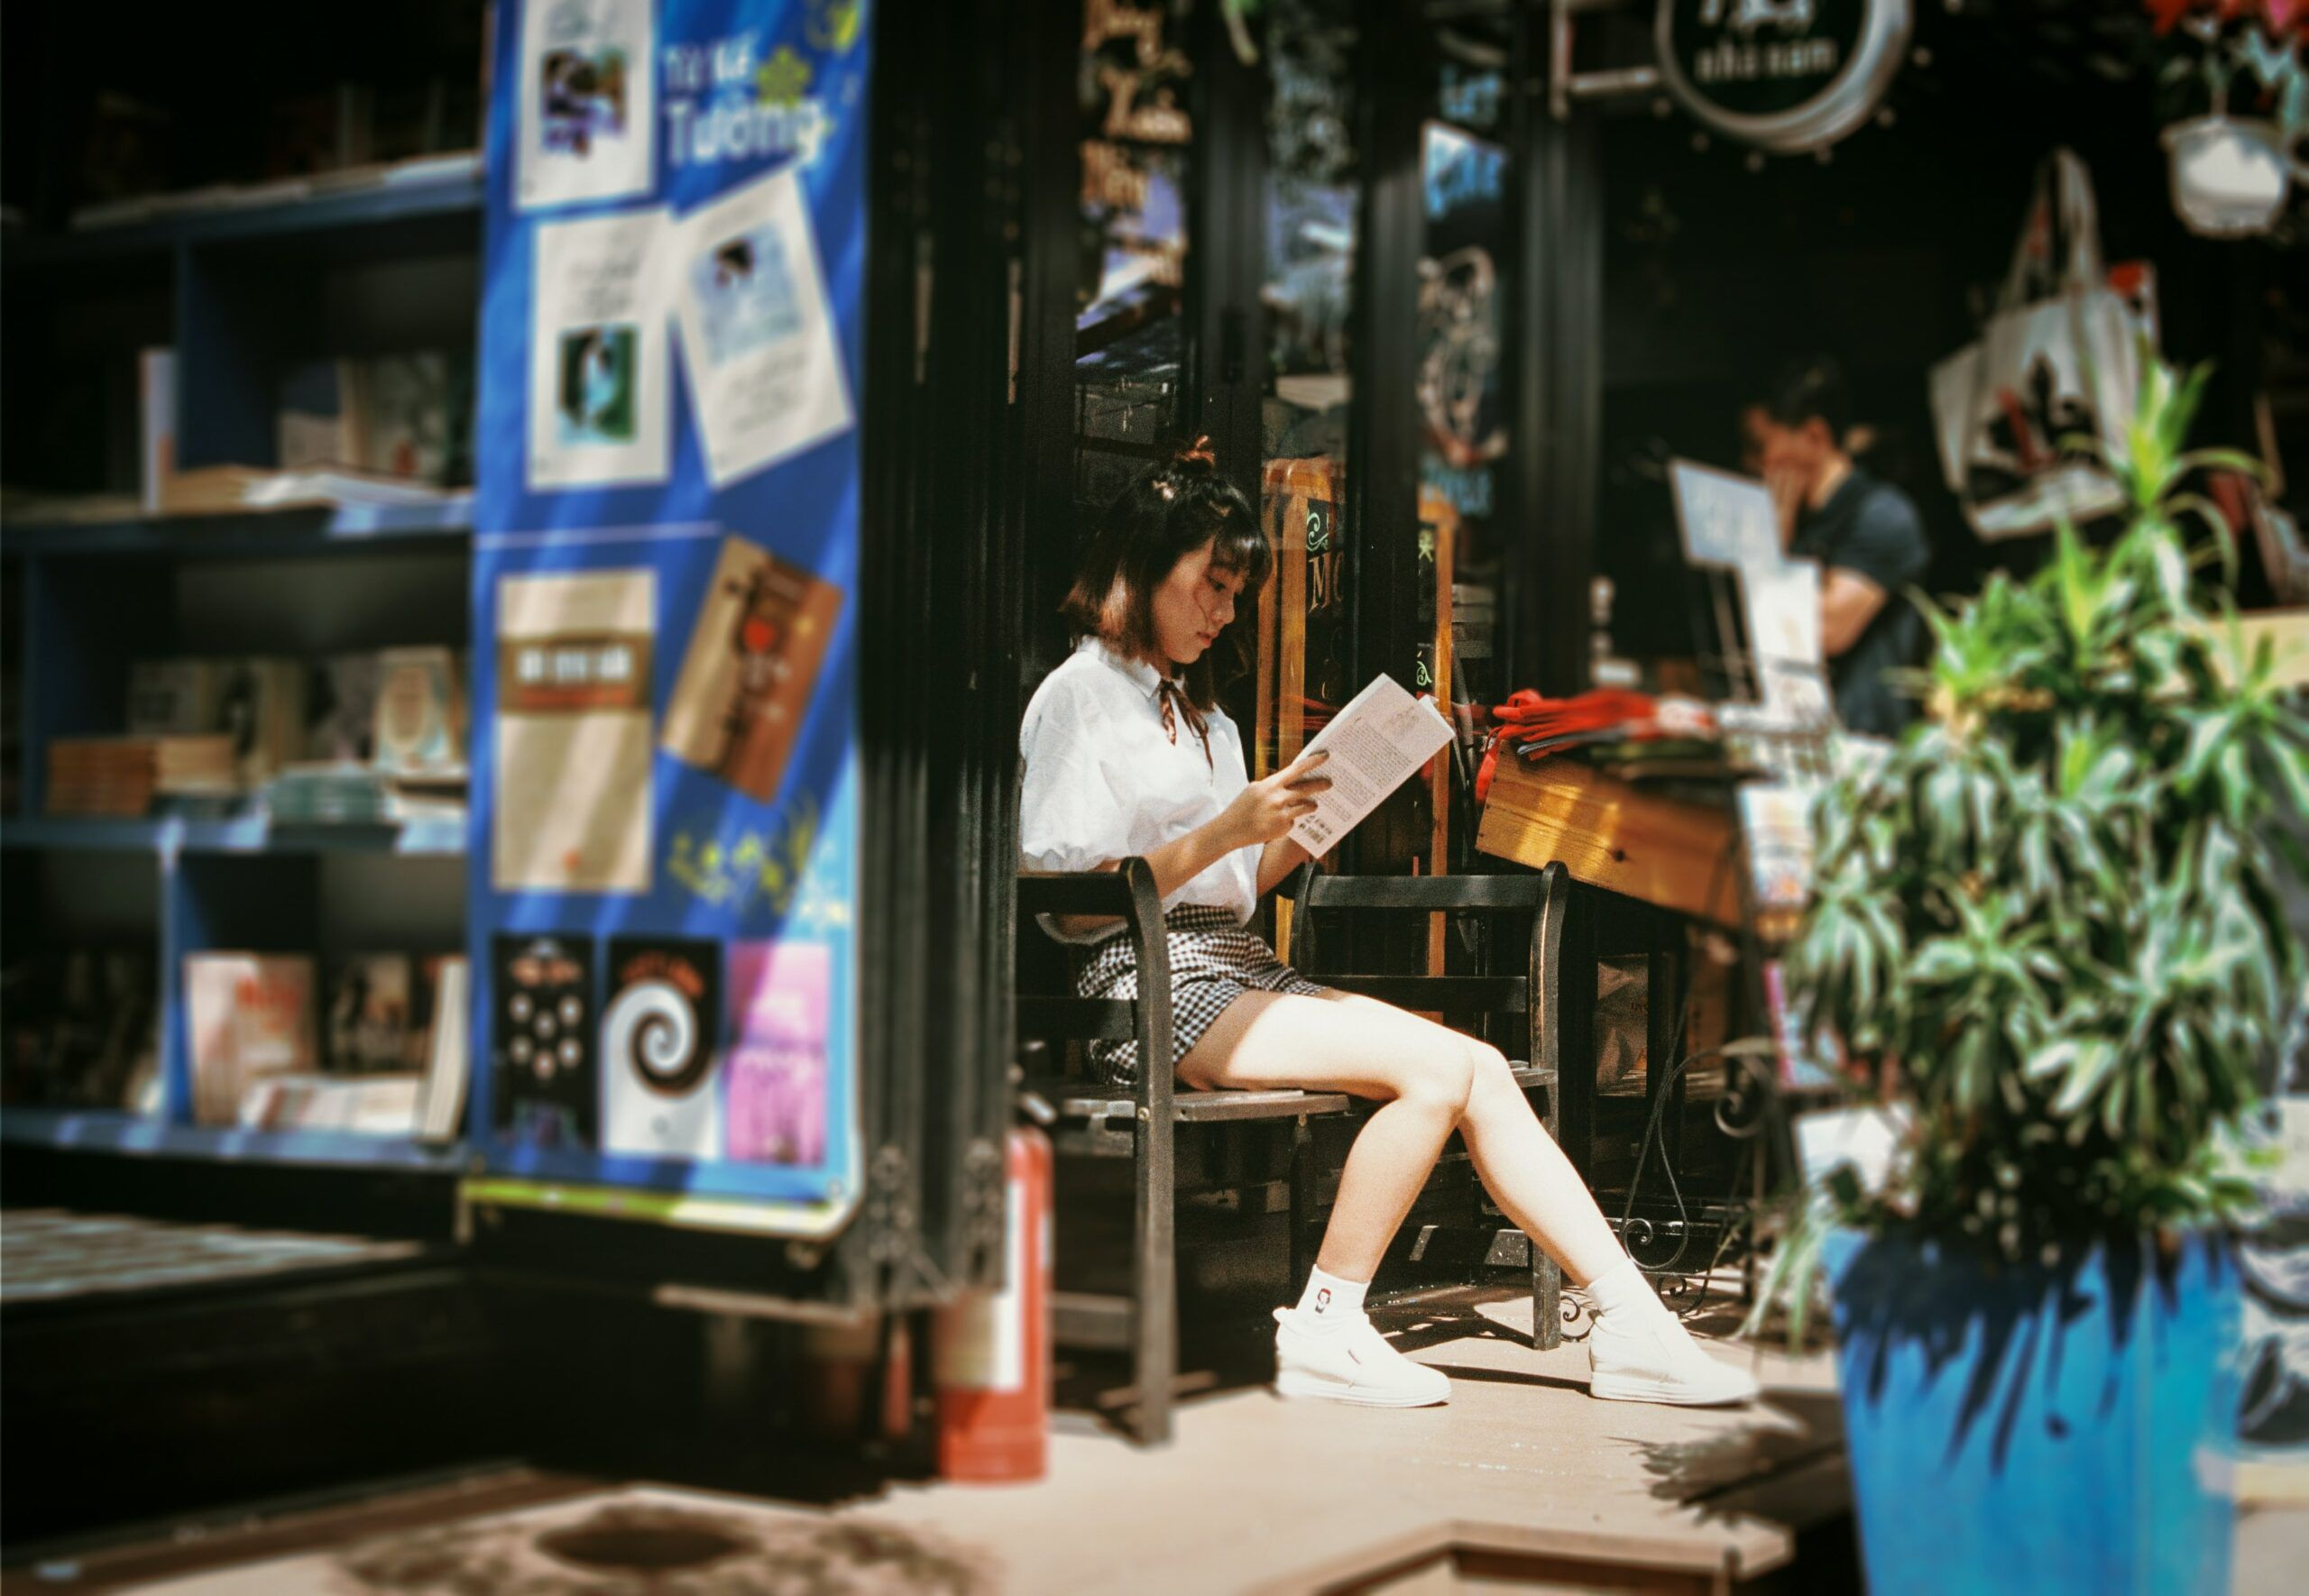 A woman is seen reading a book in front of a bookstore